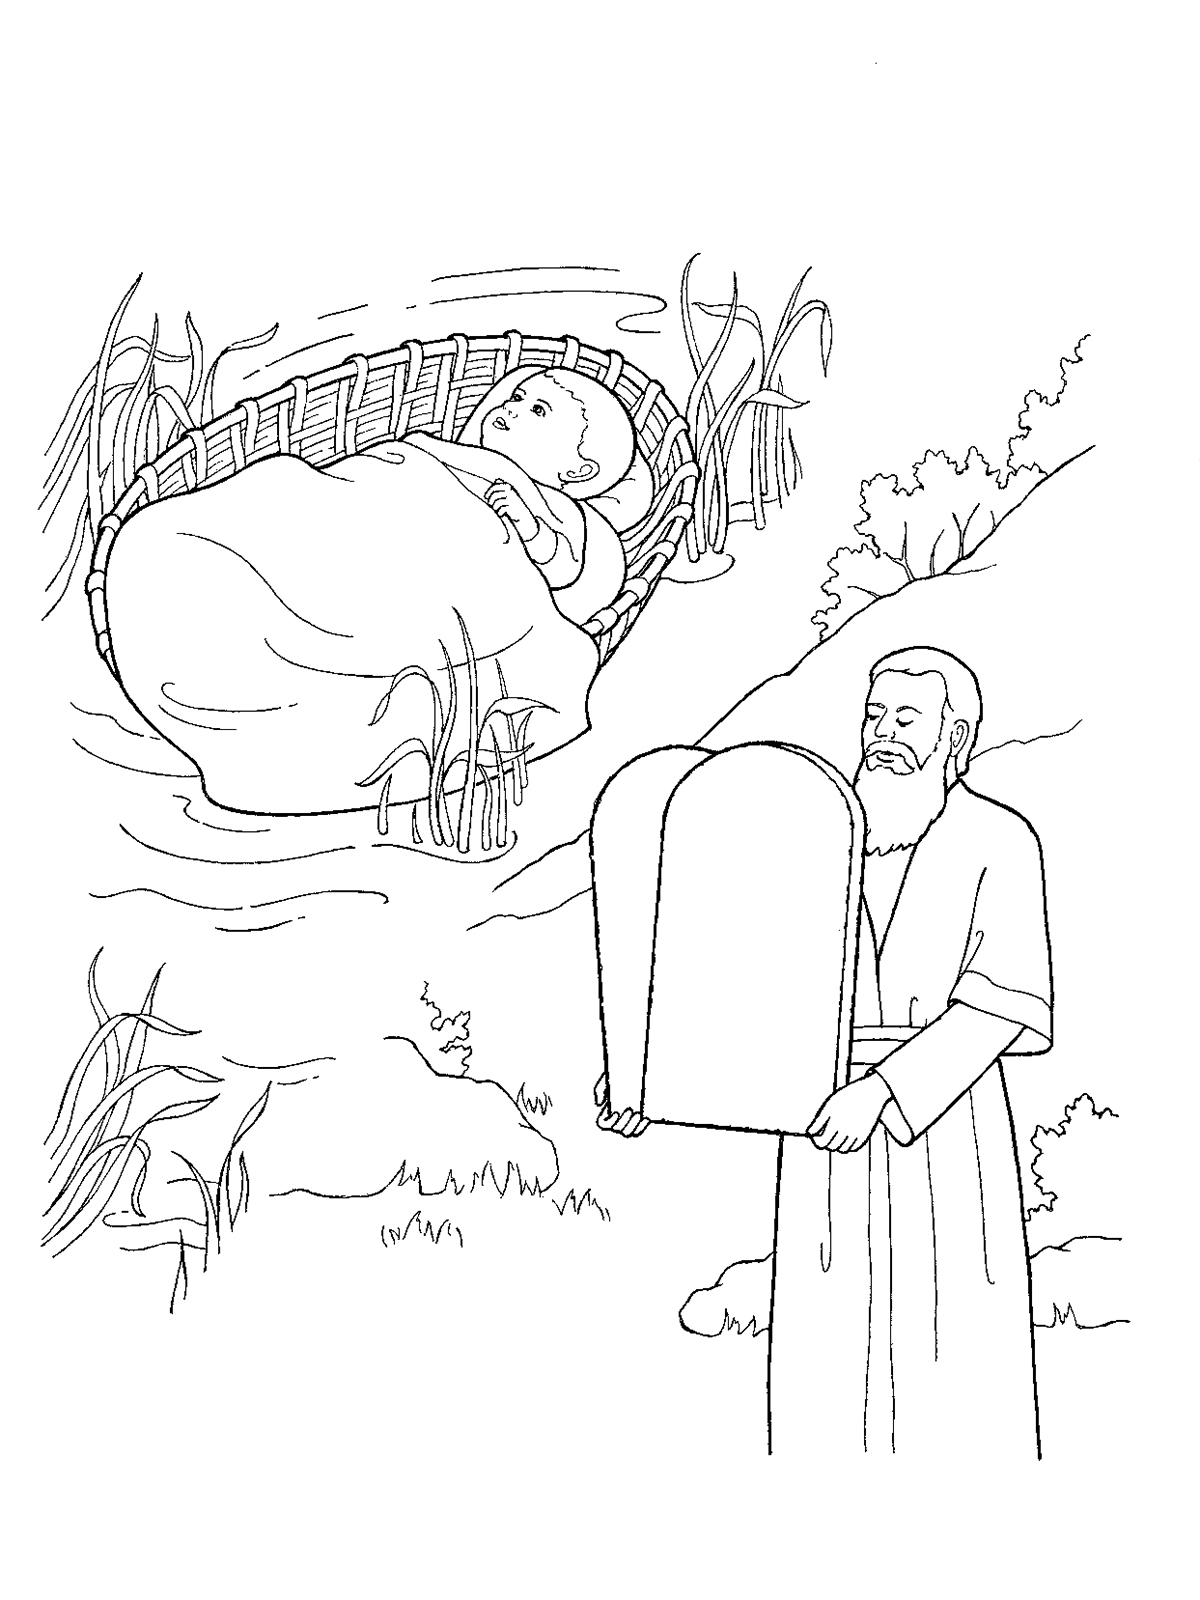 Moses As A Child And With The Ten Commandments Tablet Coloring Pages Lds